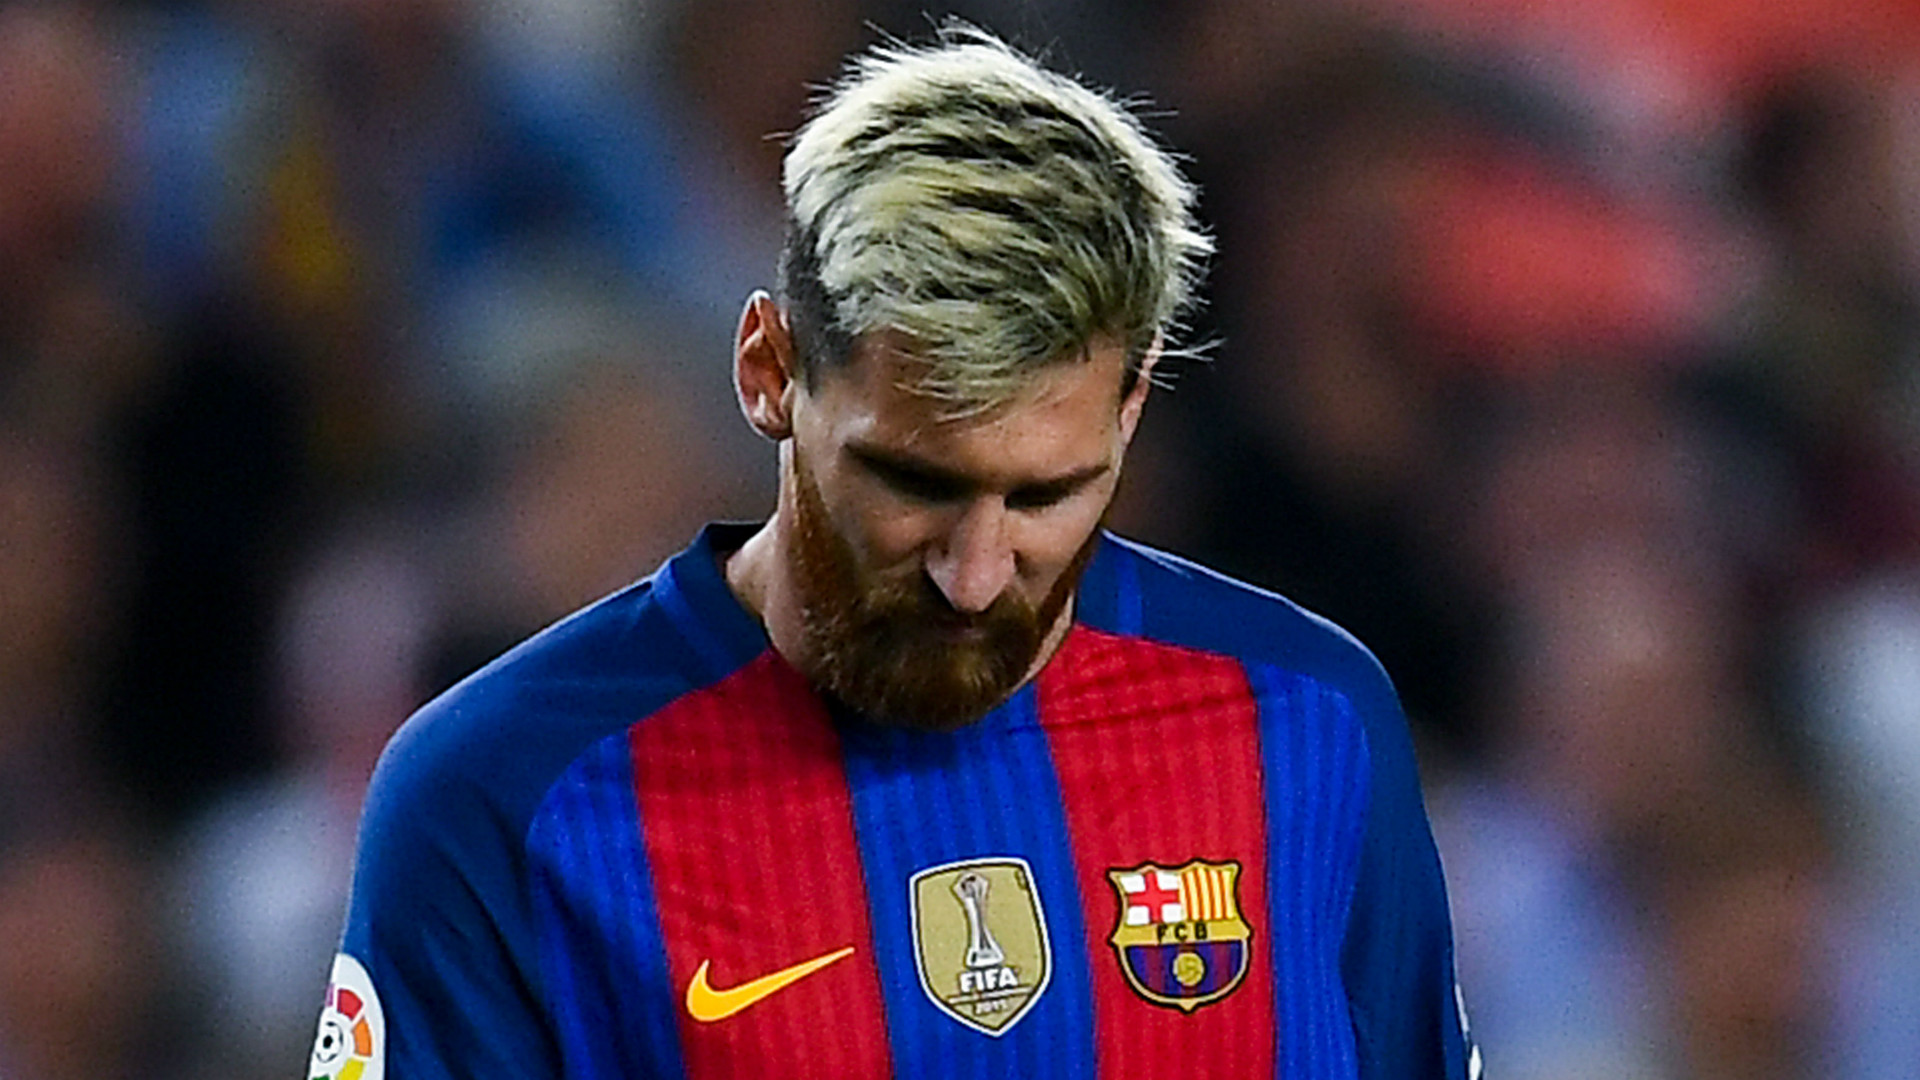 'Messi wants to be Peter Pan' - but Barcelona may need to ...